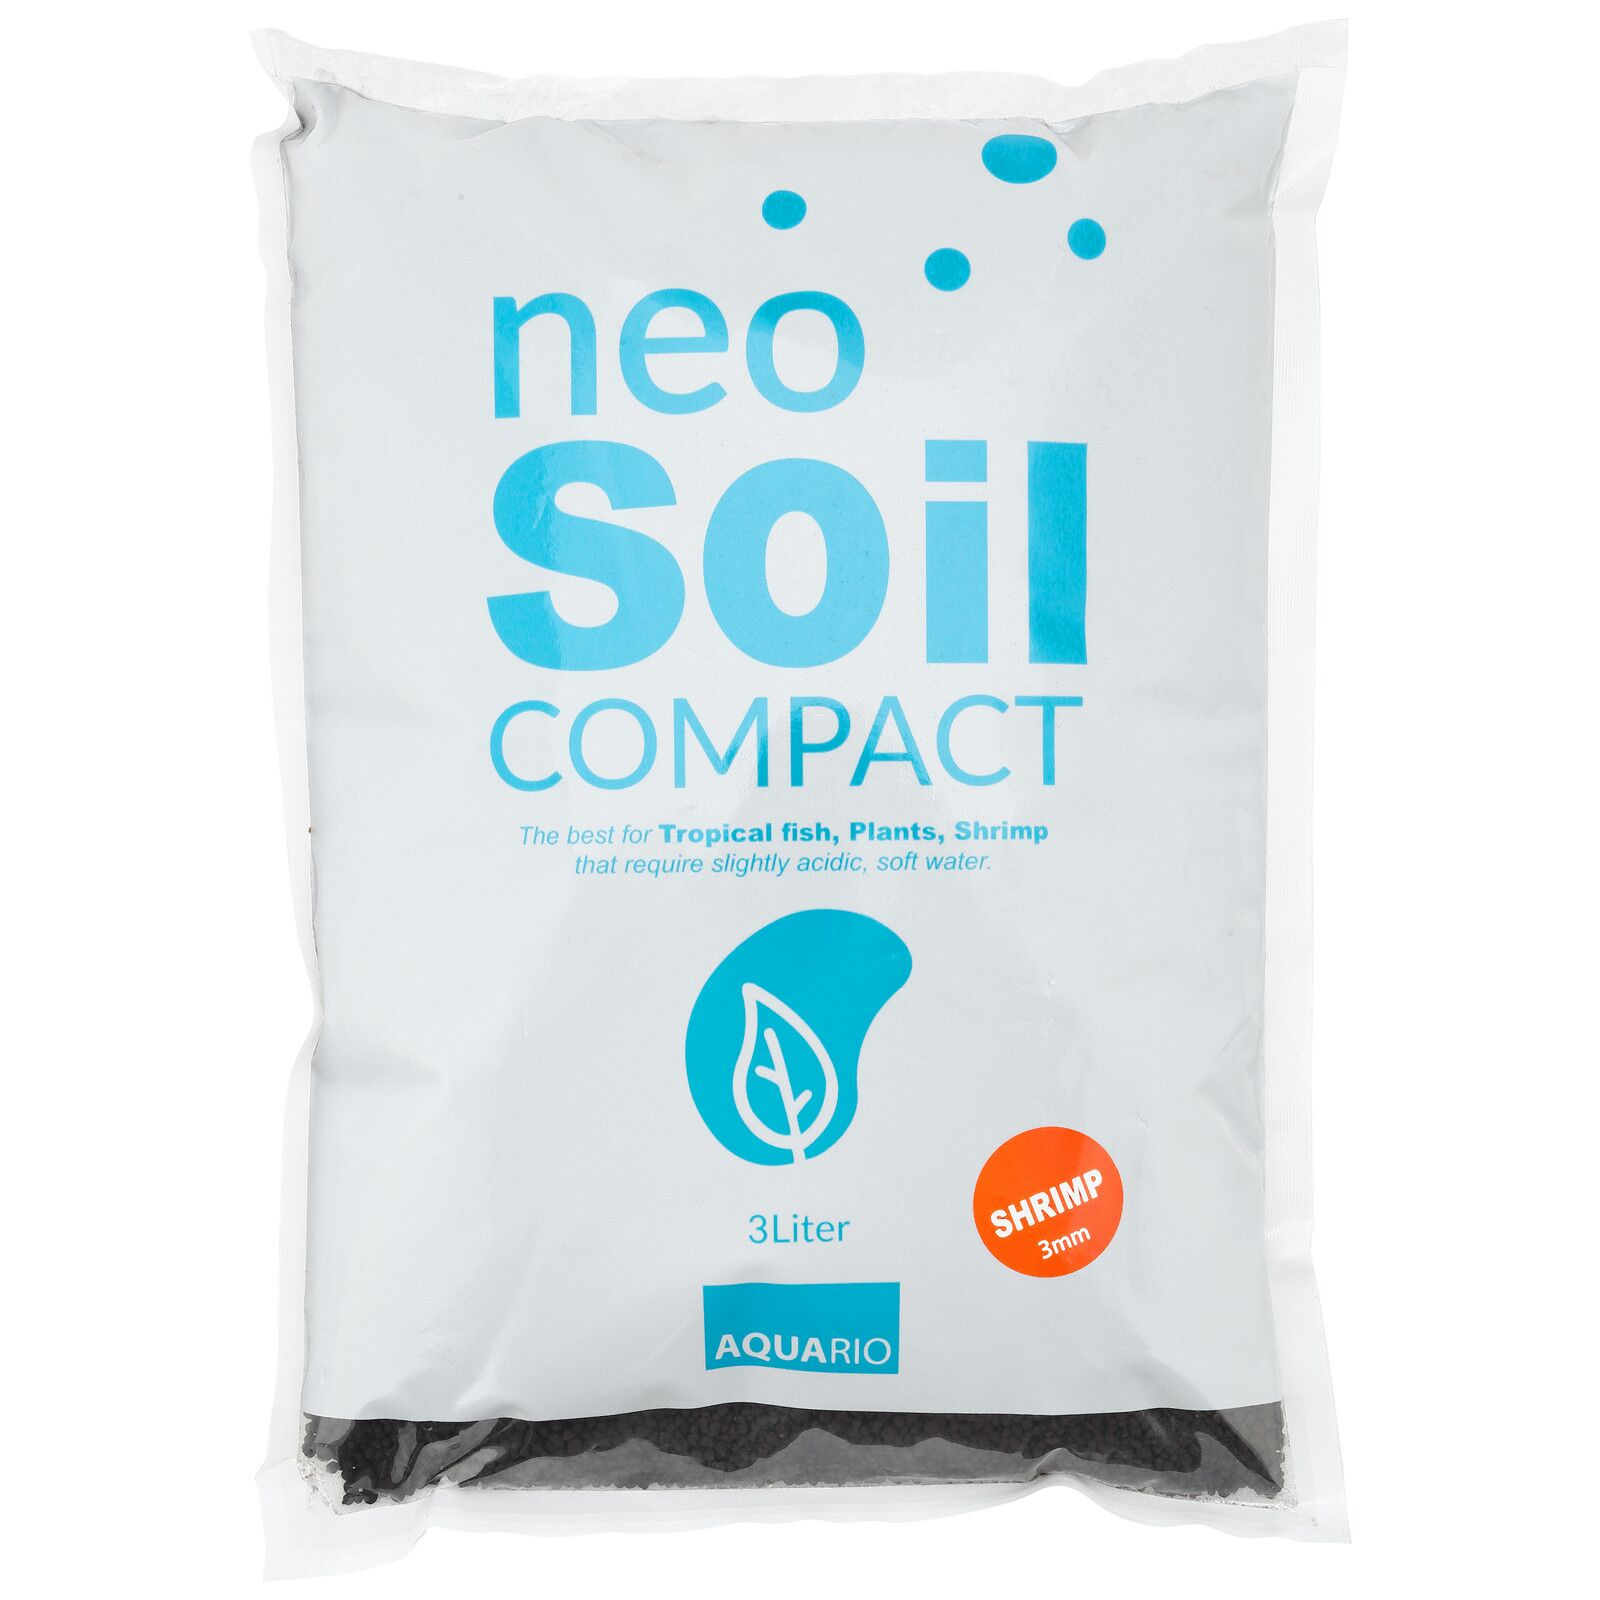 AQUARIO - Neo Soil Compact - Shrimp